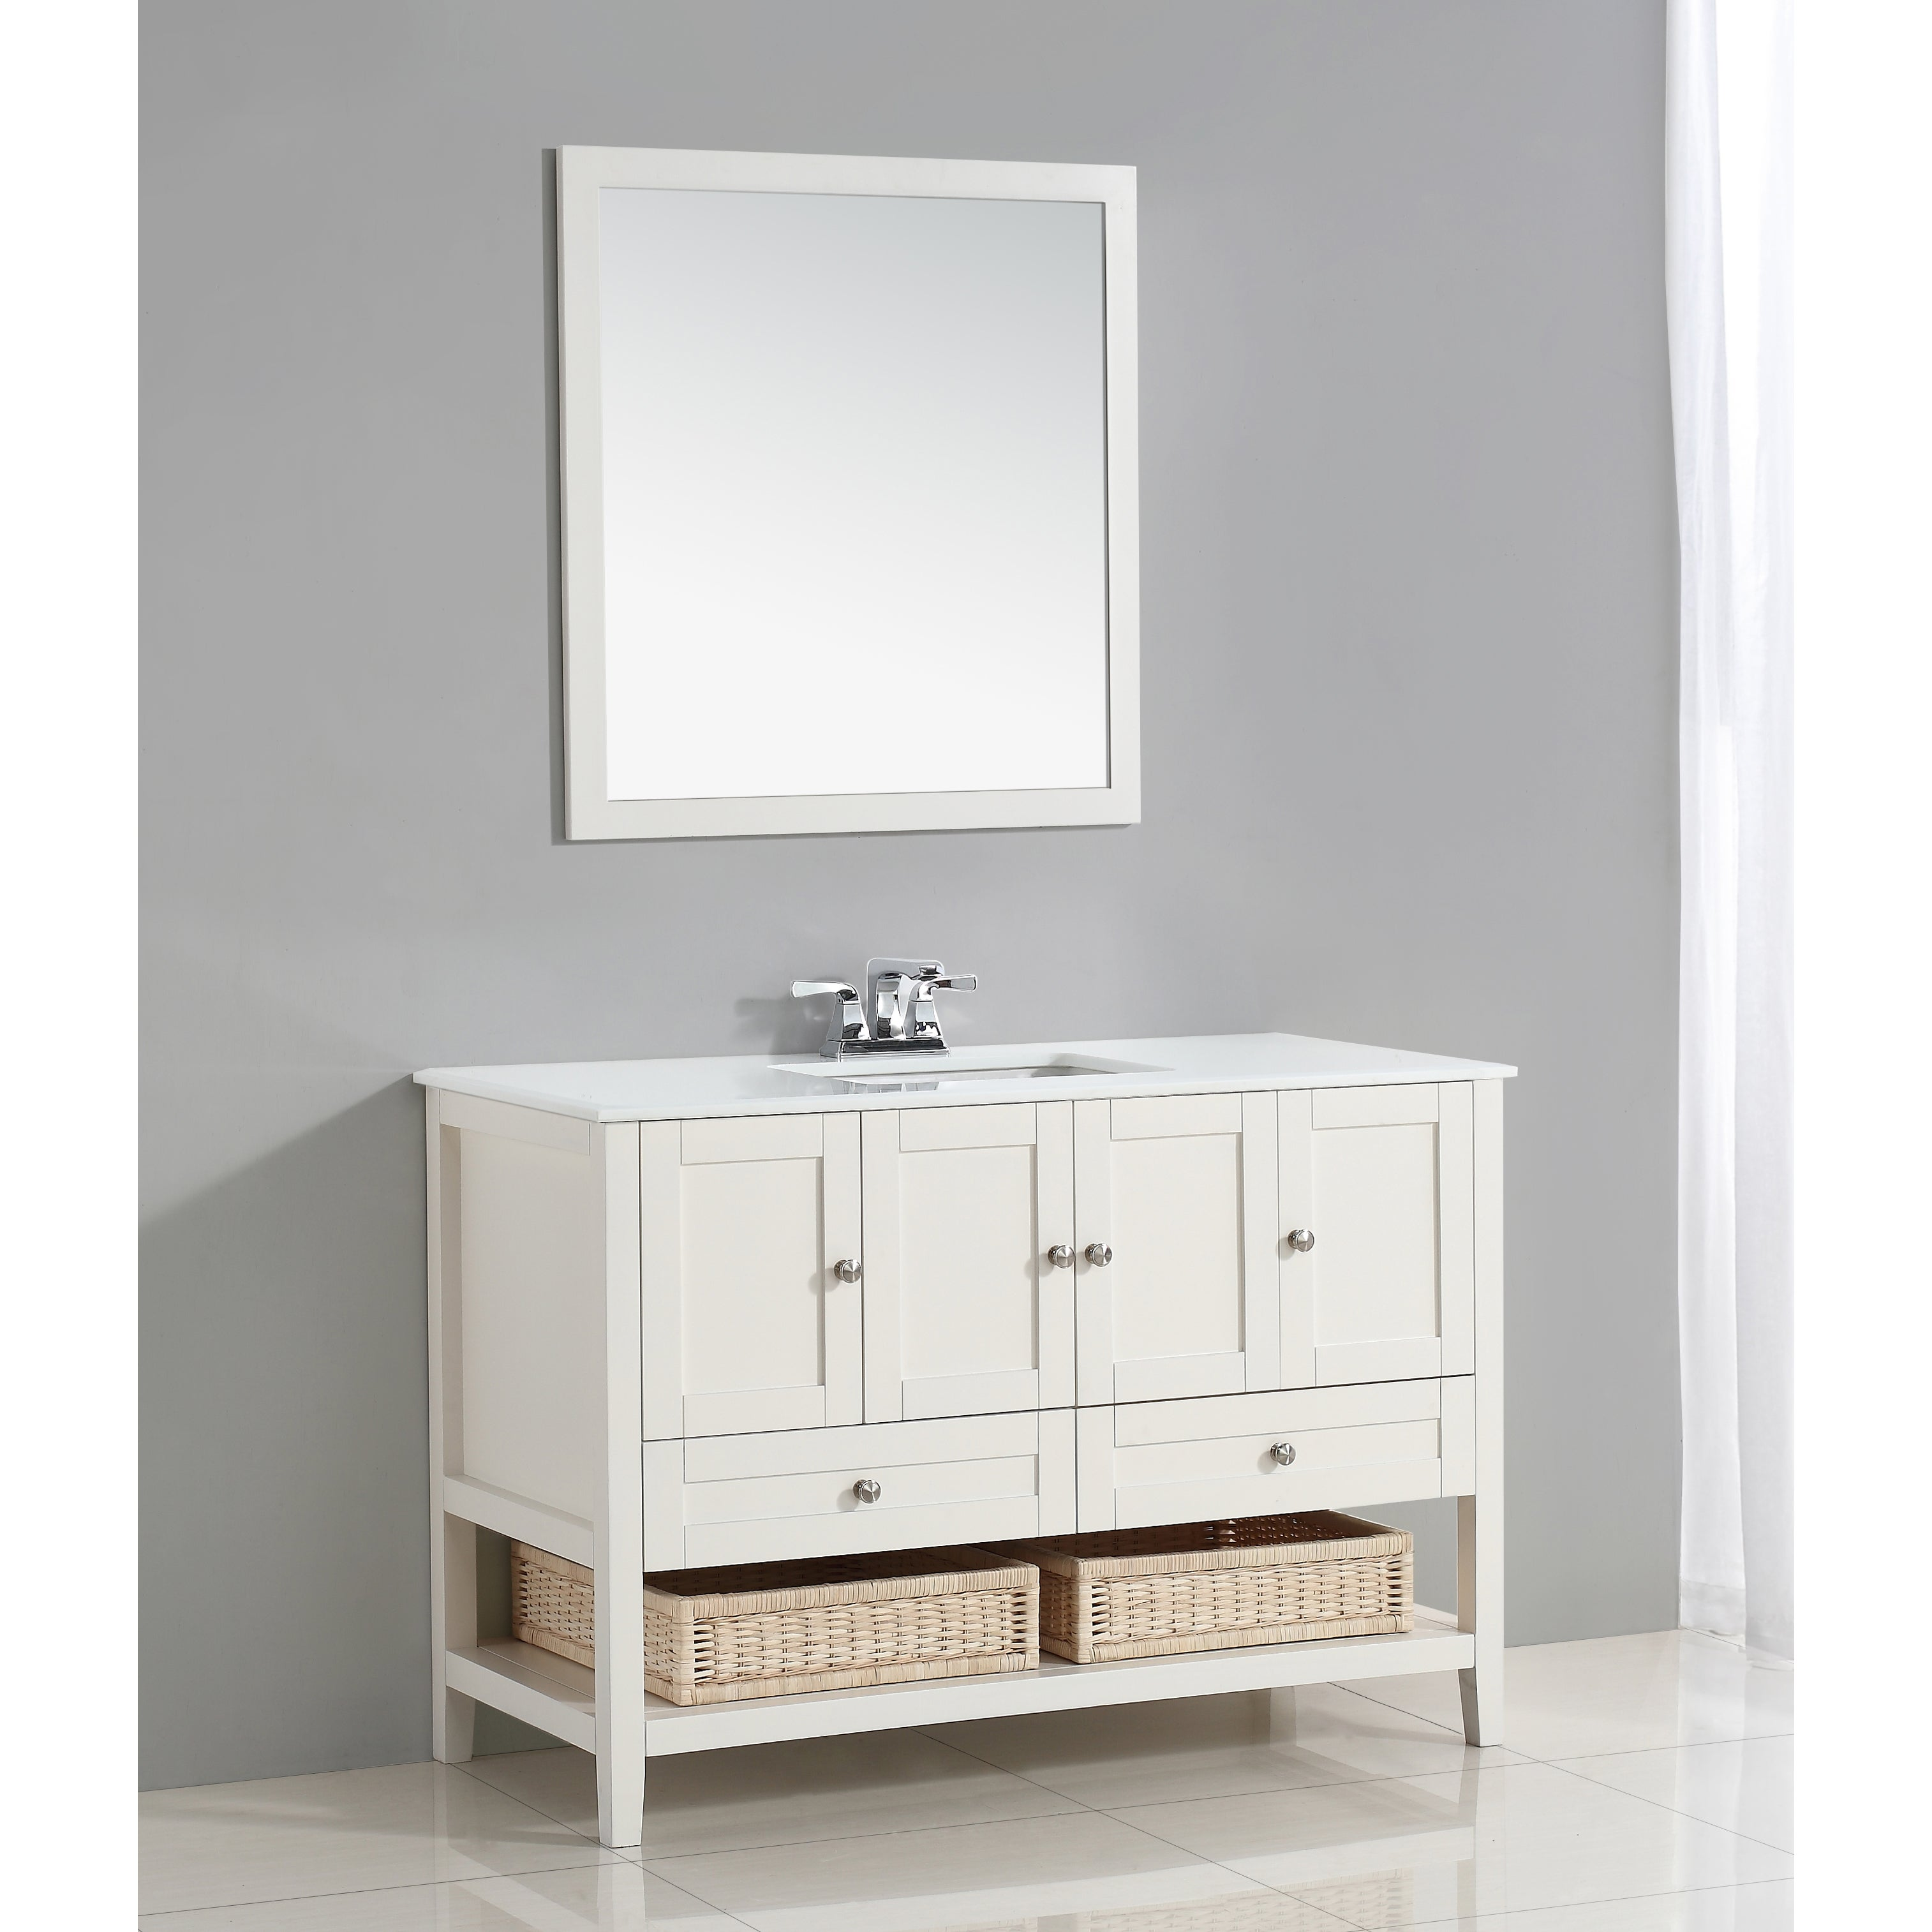 WYNDENHALL Belmont 48 inch Bath Vanity in Soft White with White Engineered Quartz Marble Top